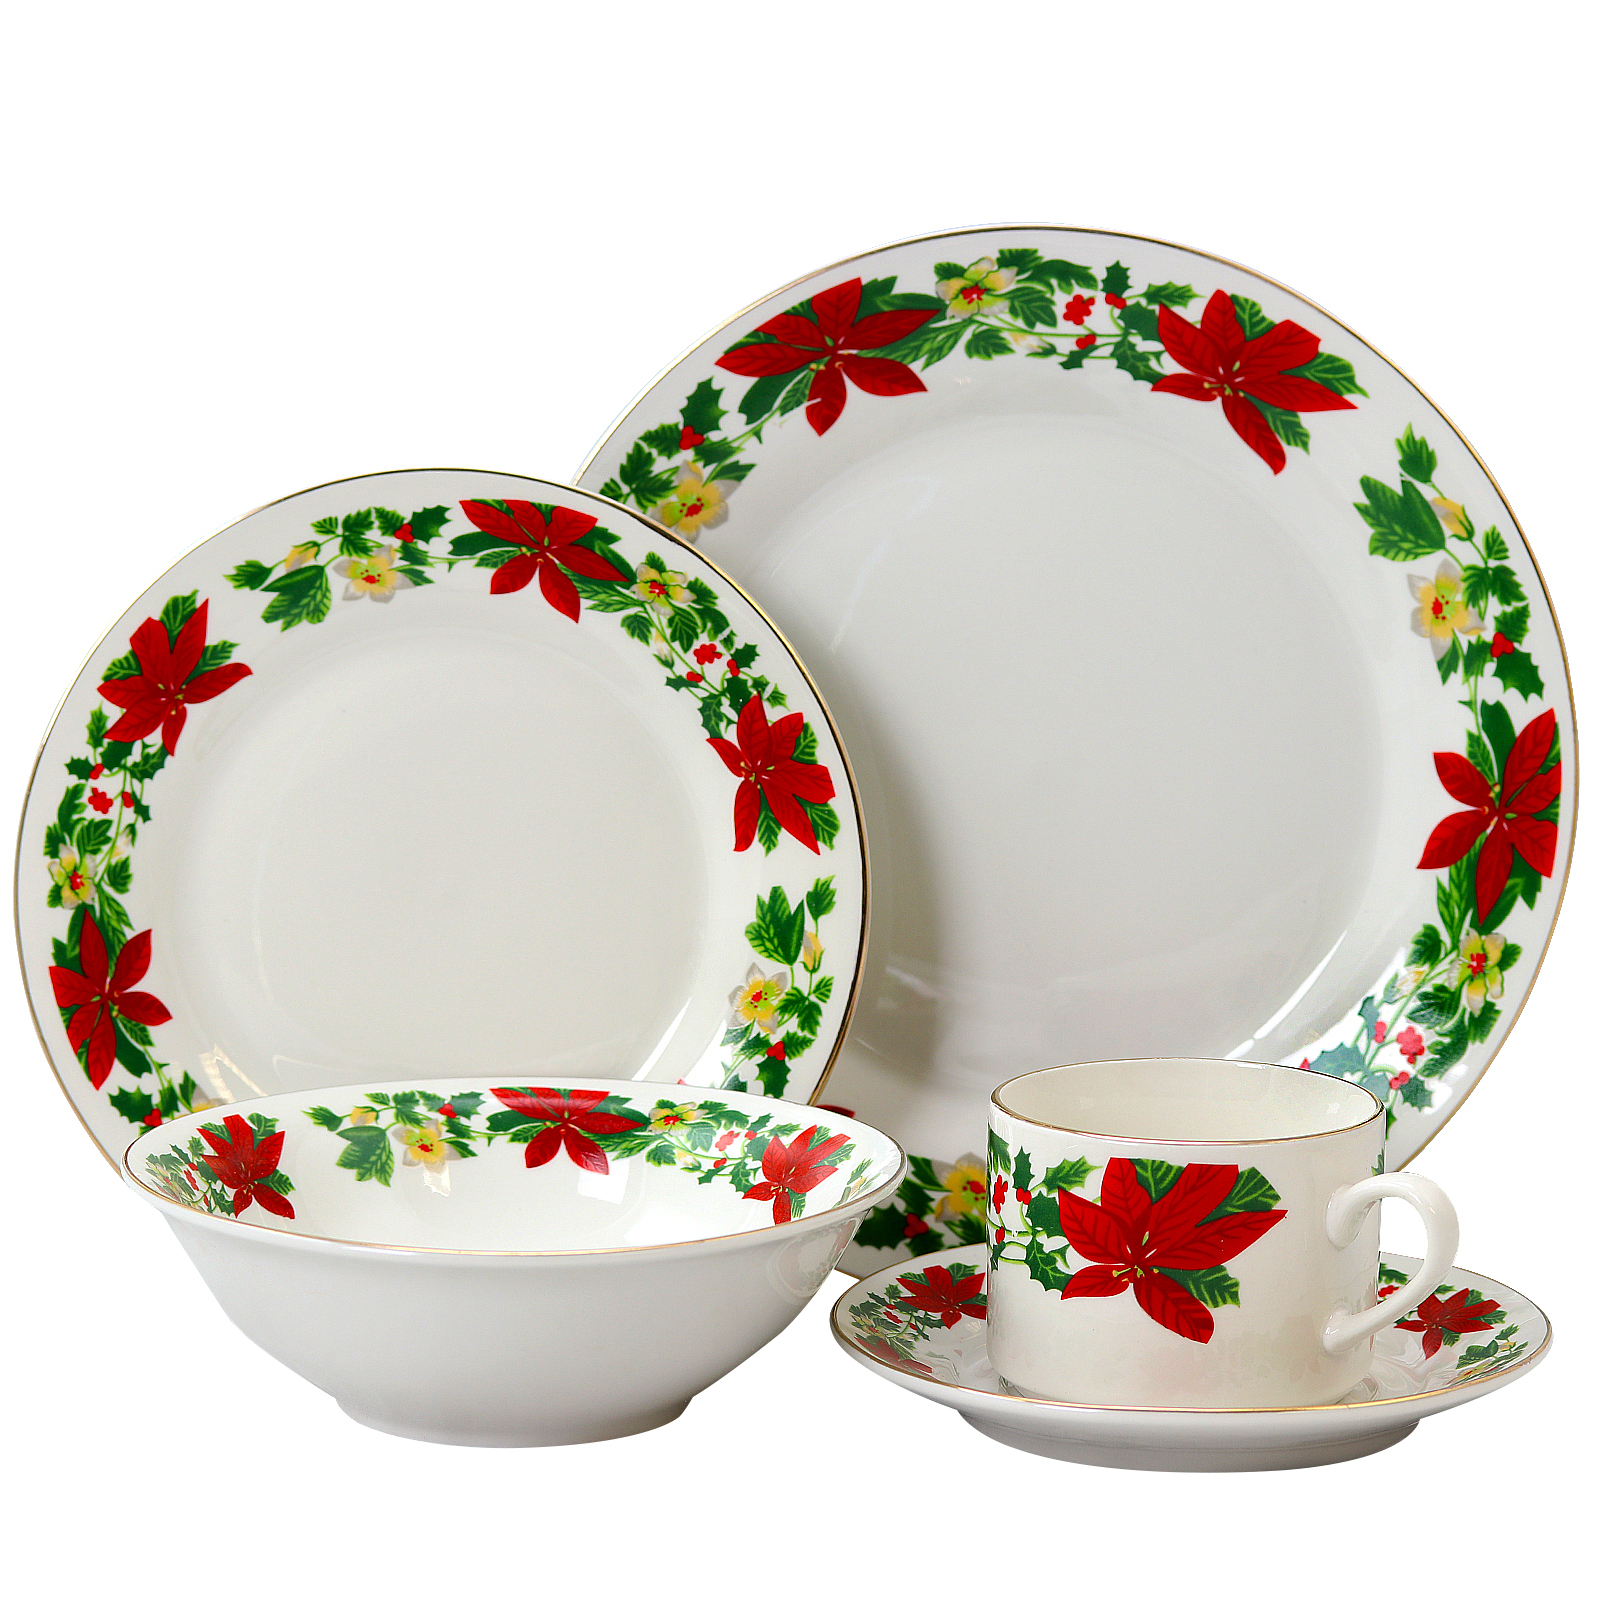 Poinsettia Holiday 20 pc Dinnerware Set - Rim Decorated - Fine Ceramic